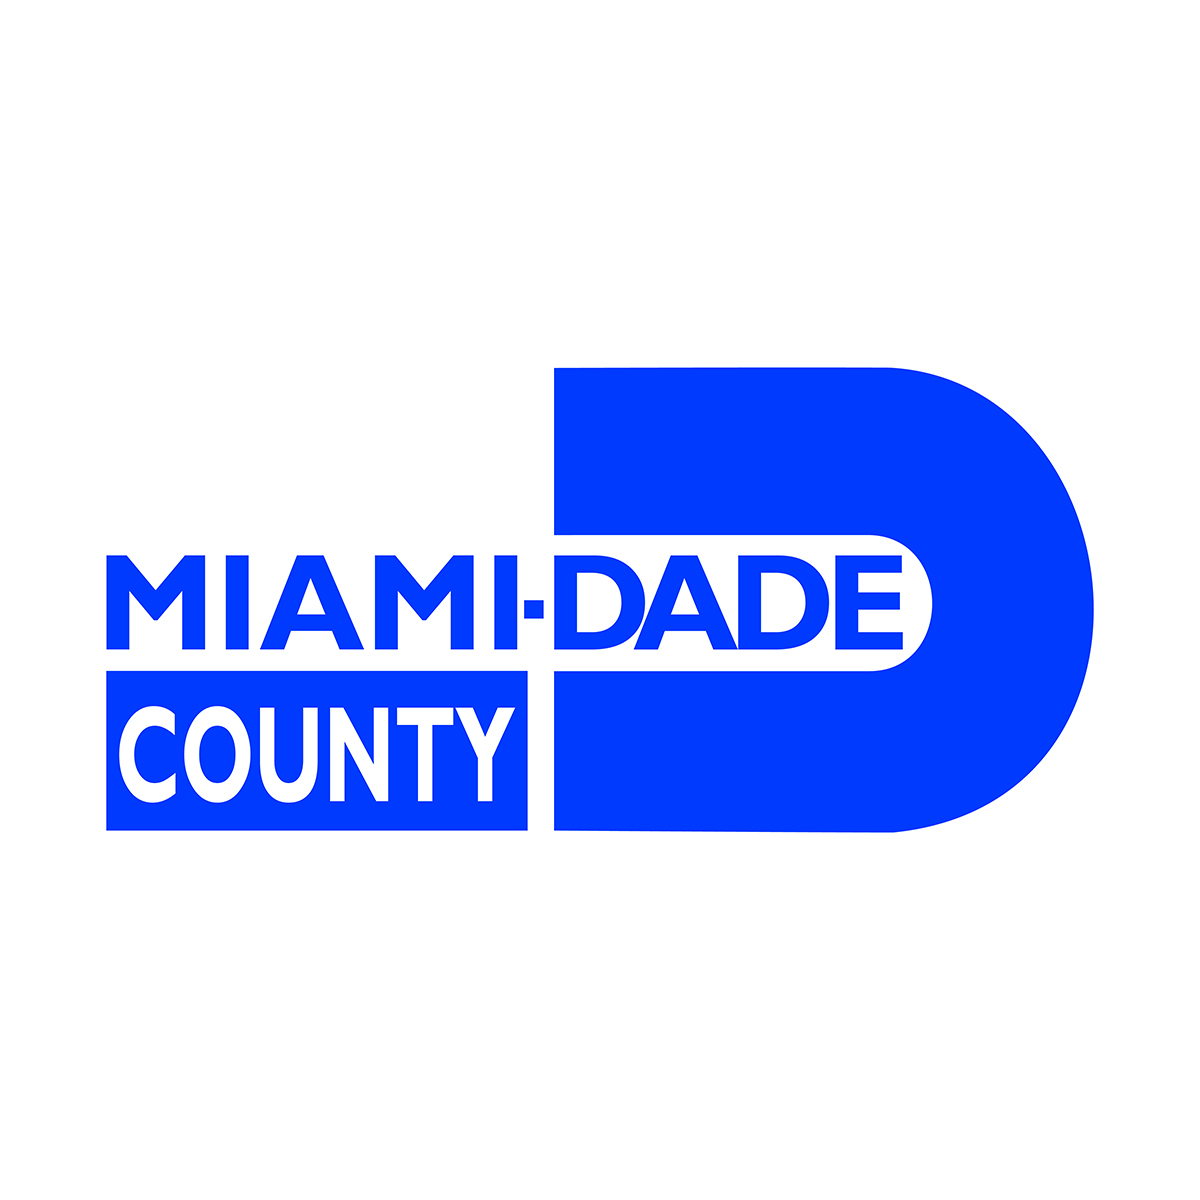 MIAMI-DADE COUNTY - Miami Film Office represents the City of Miami Office of Film & Entertainment. Our site is a one-stop web site for permitting, government liaison, production information and referral sources.Our mission is to provide service and assistance to all film, television, music, commercial production and still photography businesses to promote industry expansion and economic prosperity.